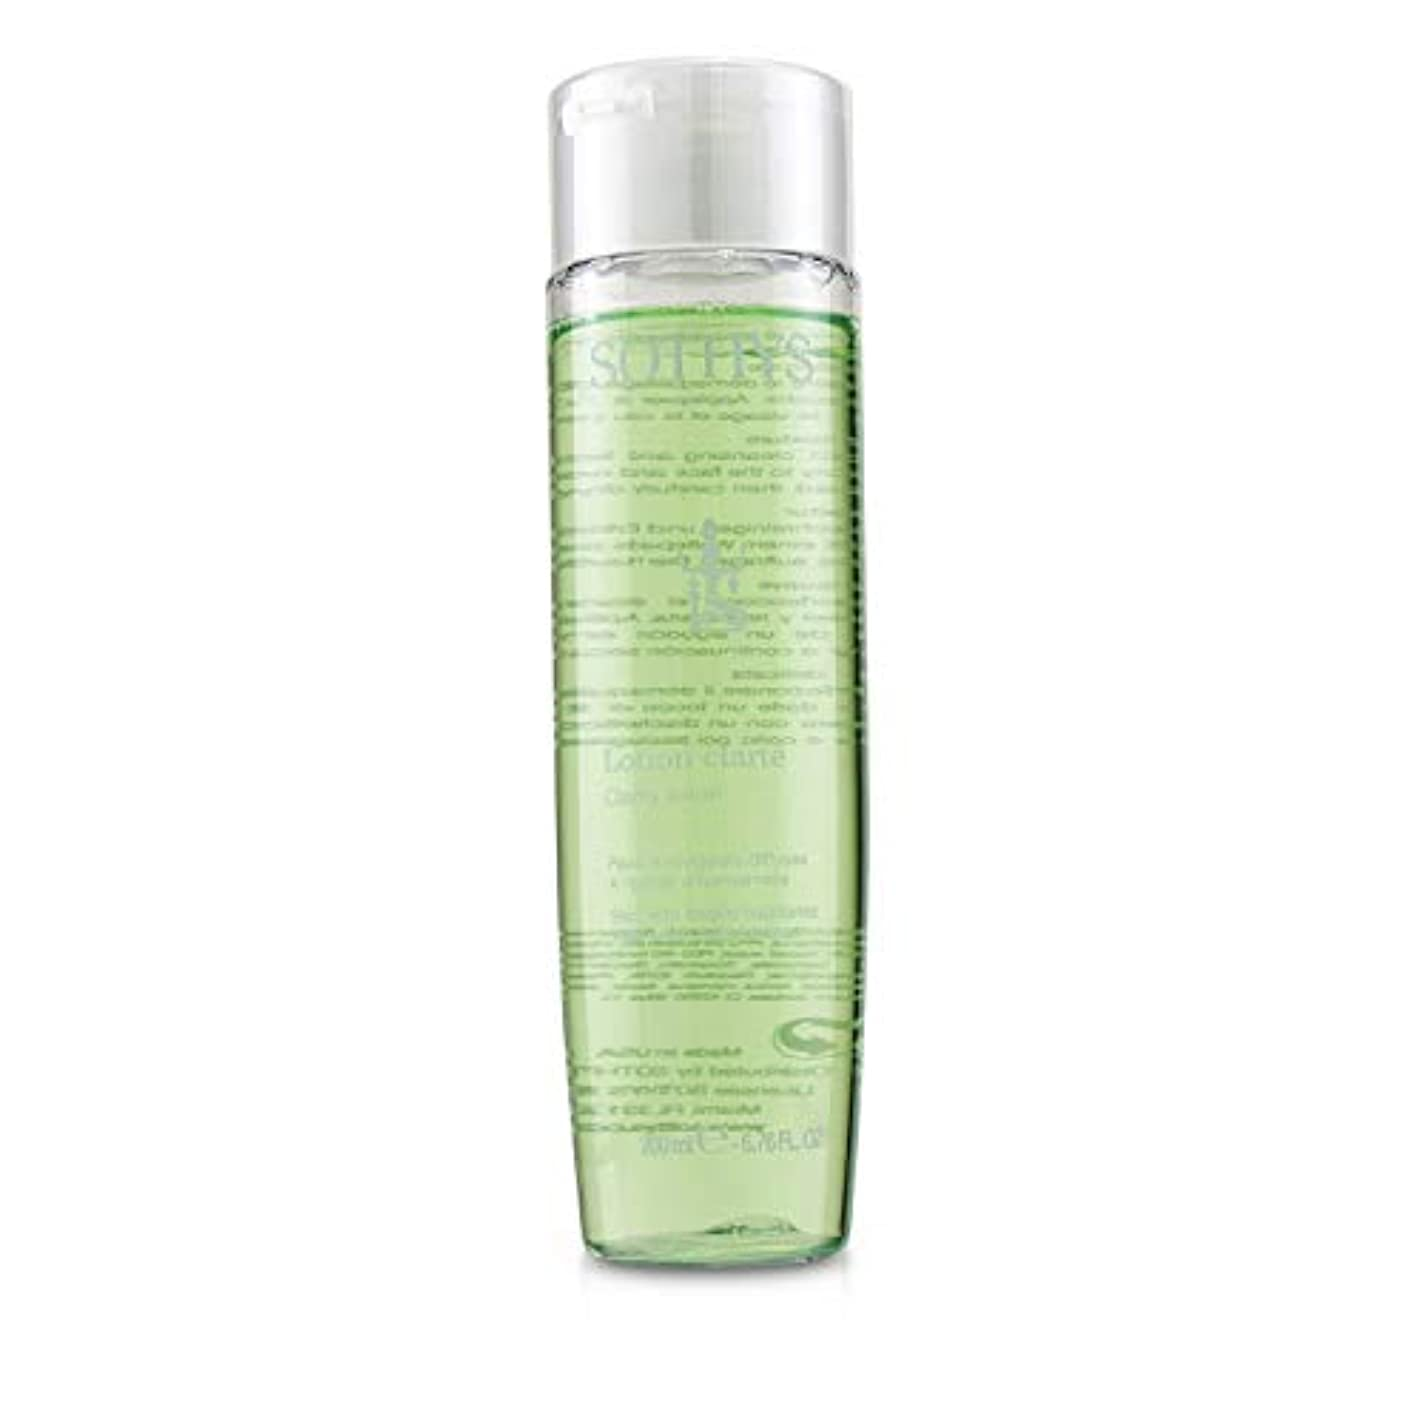 メトロポリタンソーシャル彼女自身Sothys Clarity Lotion - For Skin With Fragile Capillaries, With Witch Hazel Extract 200ml/6.76oz並行輸入品